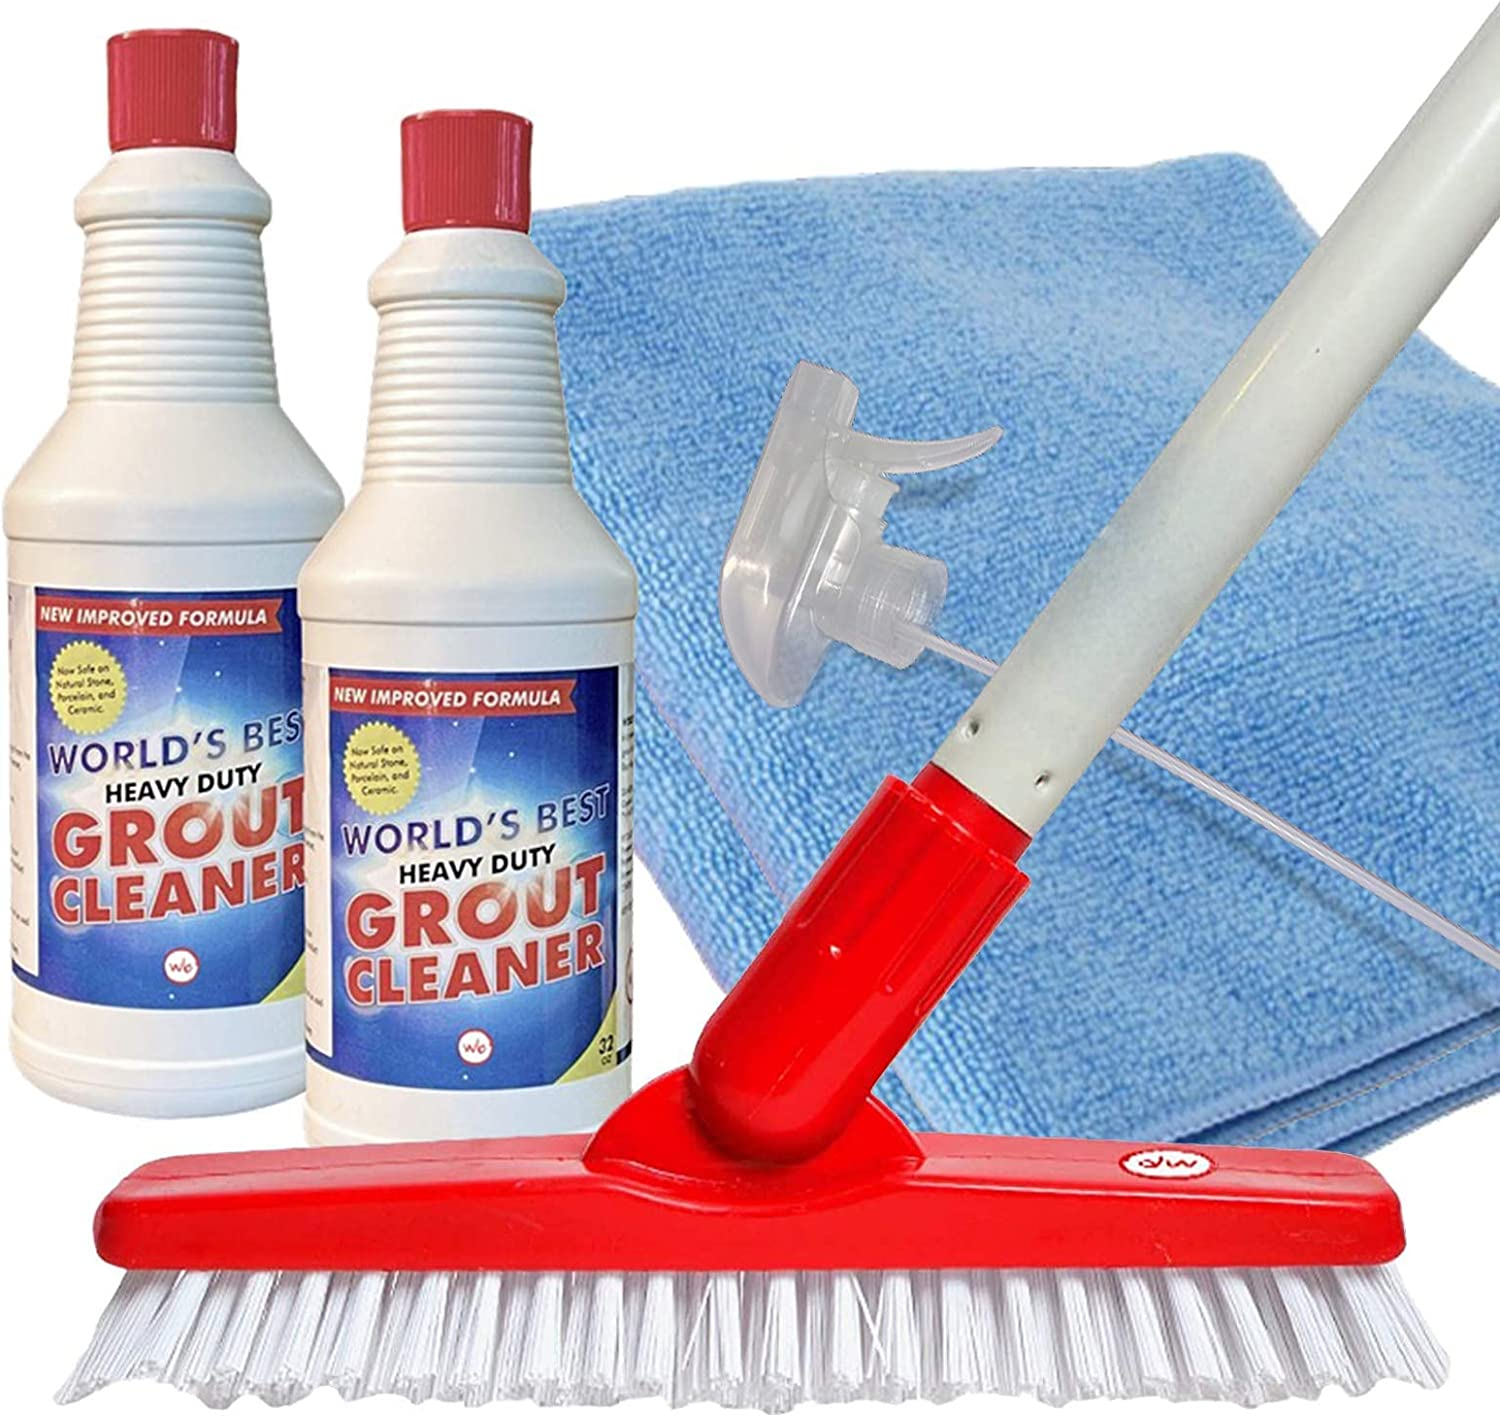 World's Best Heavy-Duty Grout Cleaning Kit   Grout Cleaner, Brush Scrubber with Adjustable Pole Handle, Microfiber Cloth, Spray Bottle   Safe for Ceramic & Porcelain Tiles   Cleans Dirt, Mould, Stains